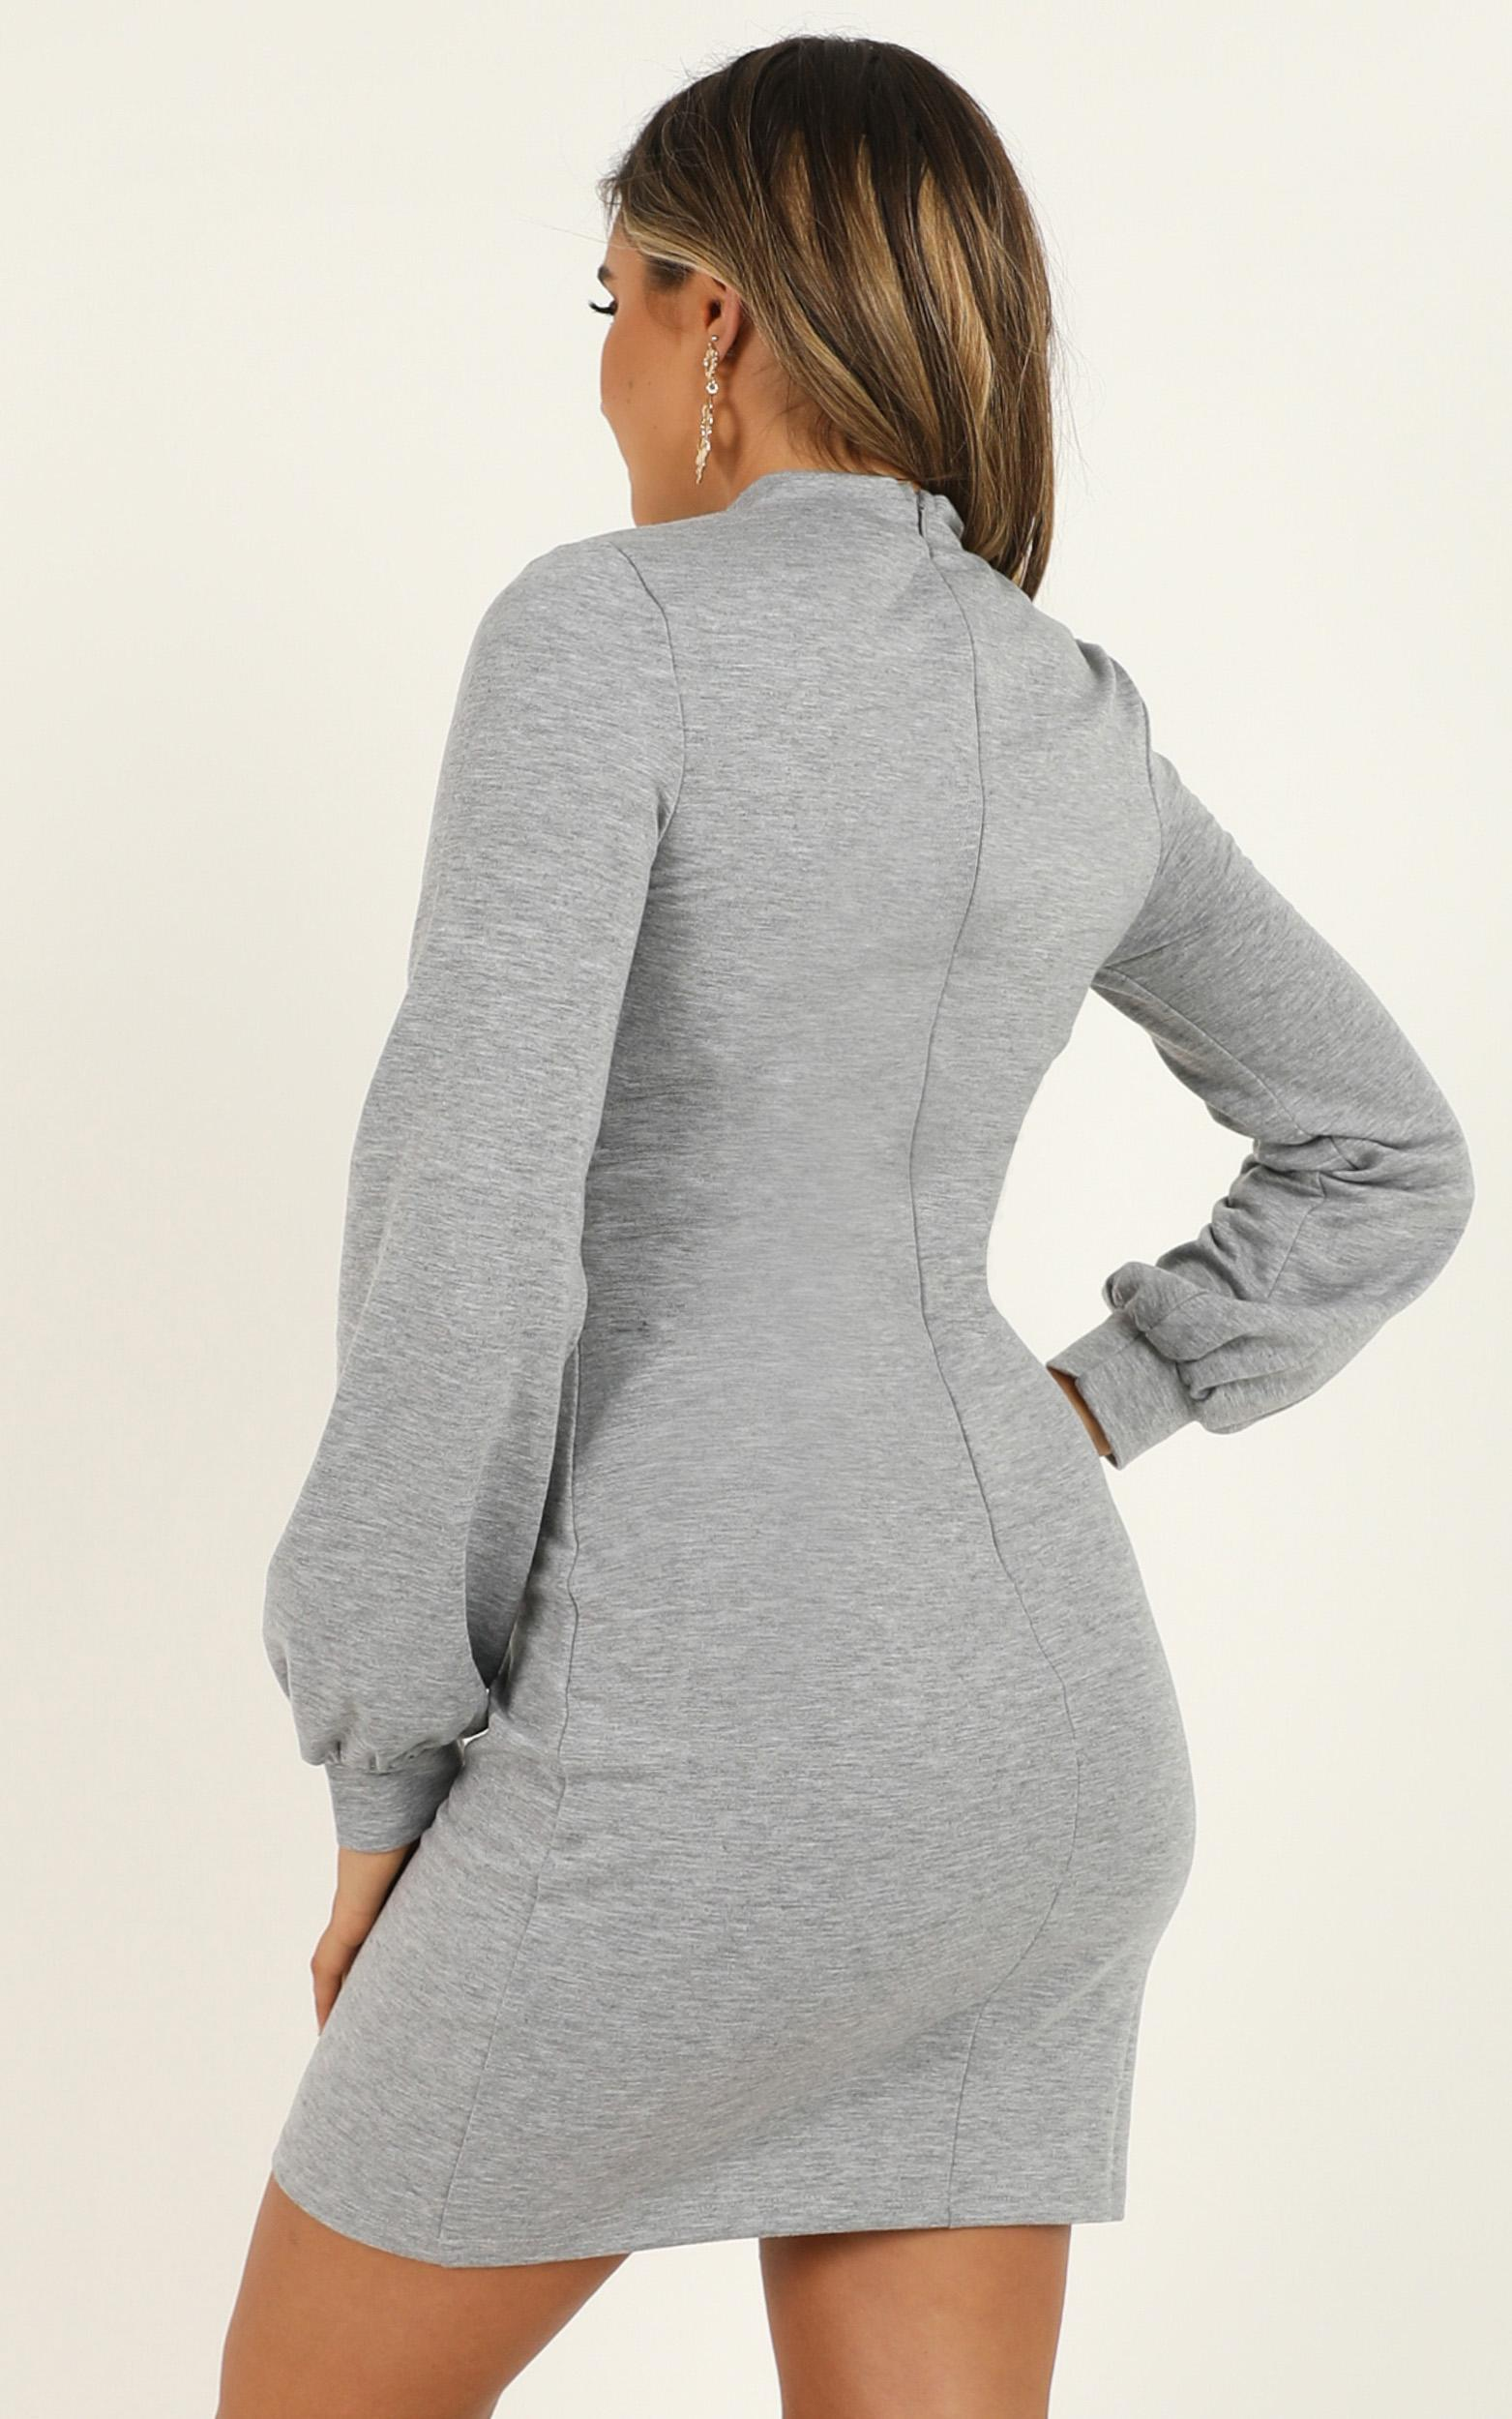 Calling Favours Dress in grey - 20 (XXXXL), Grey, hi-res image number null